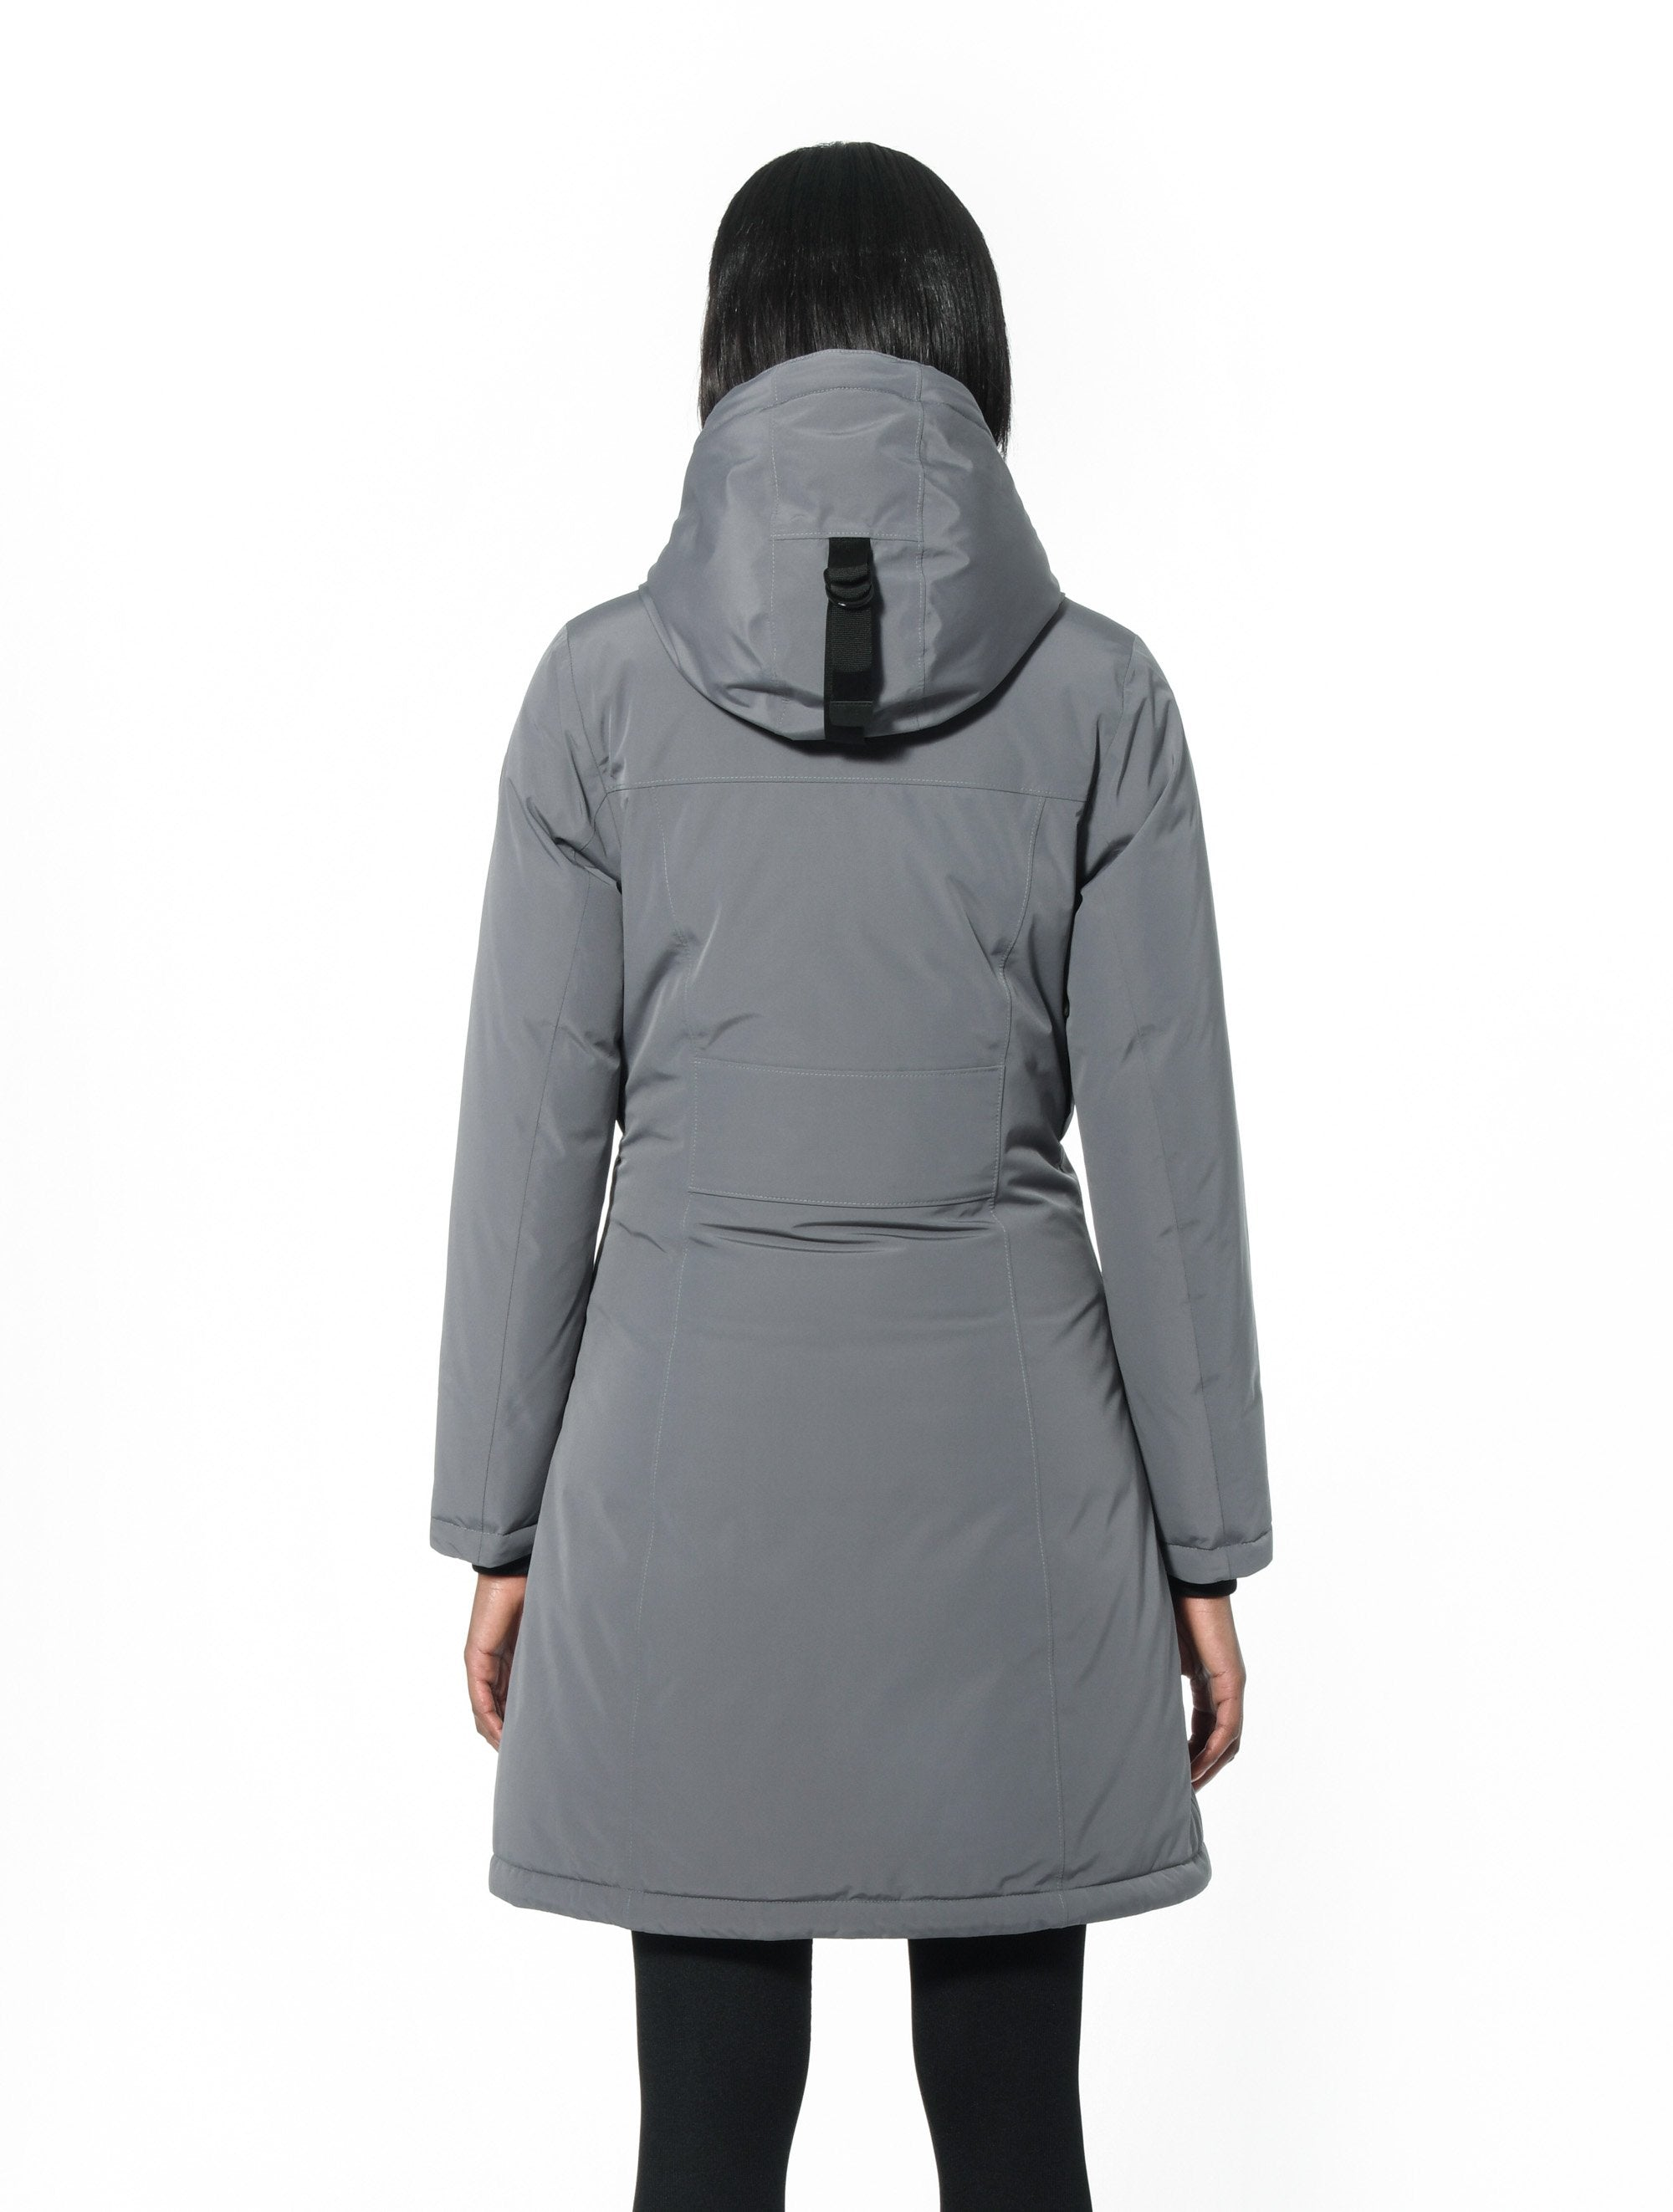 Ladies thigh length down-filled parka with non-removable hood in Concrete | color